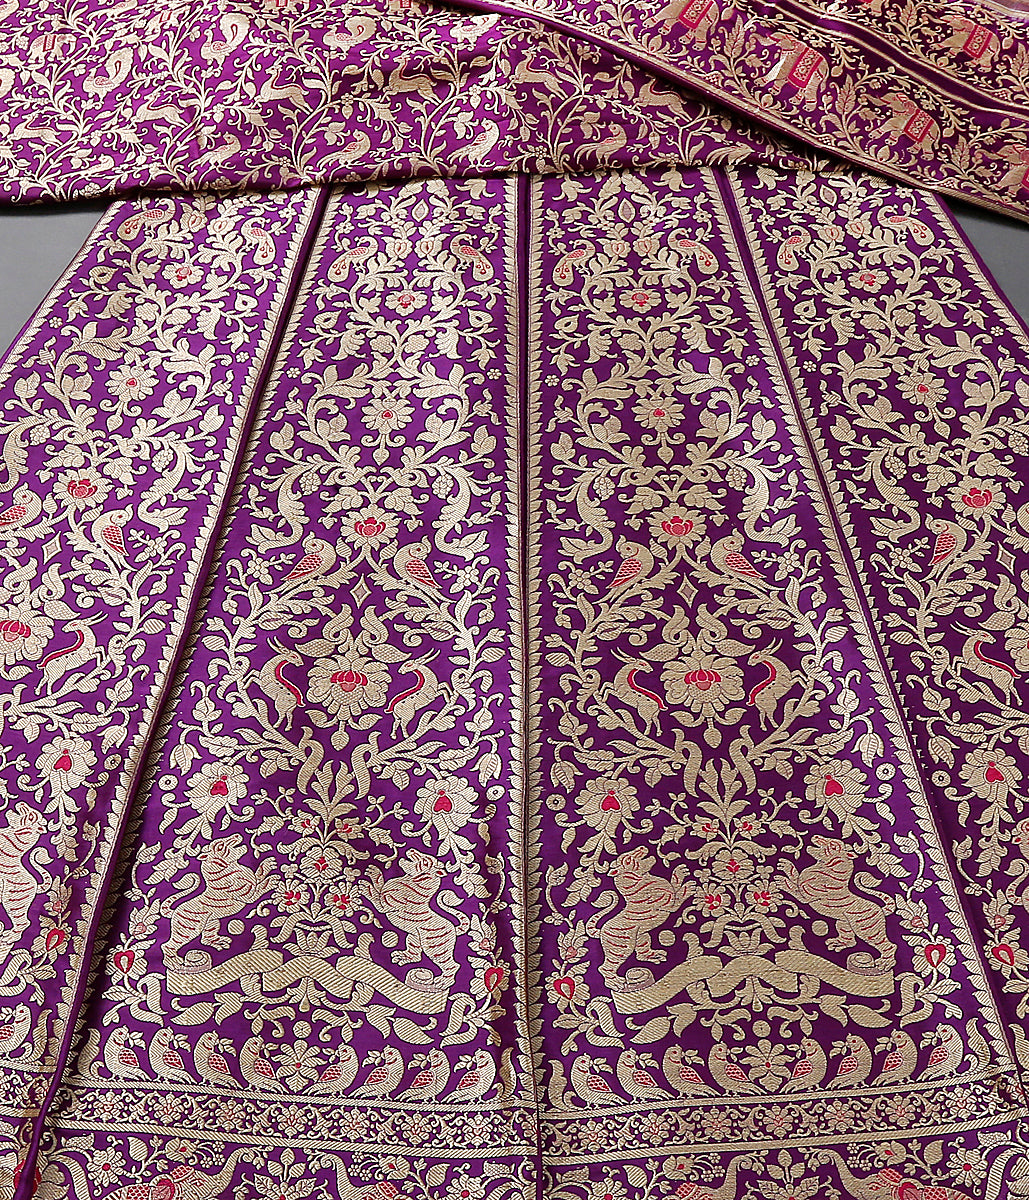 Handwoven kadhwa Banarasi Shikargah Lehenga in purple color